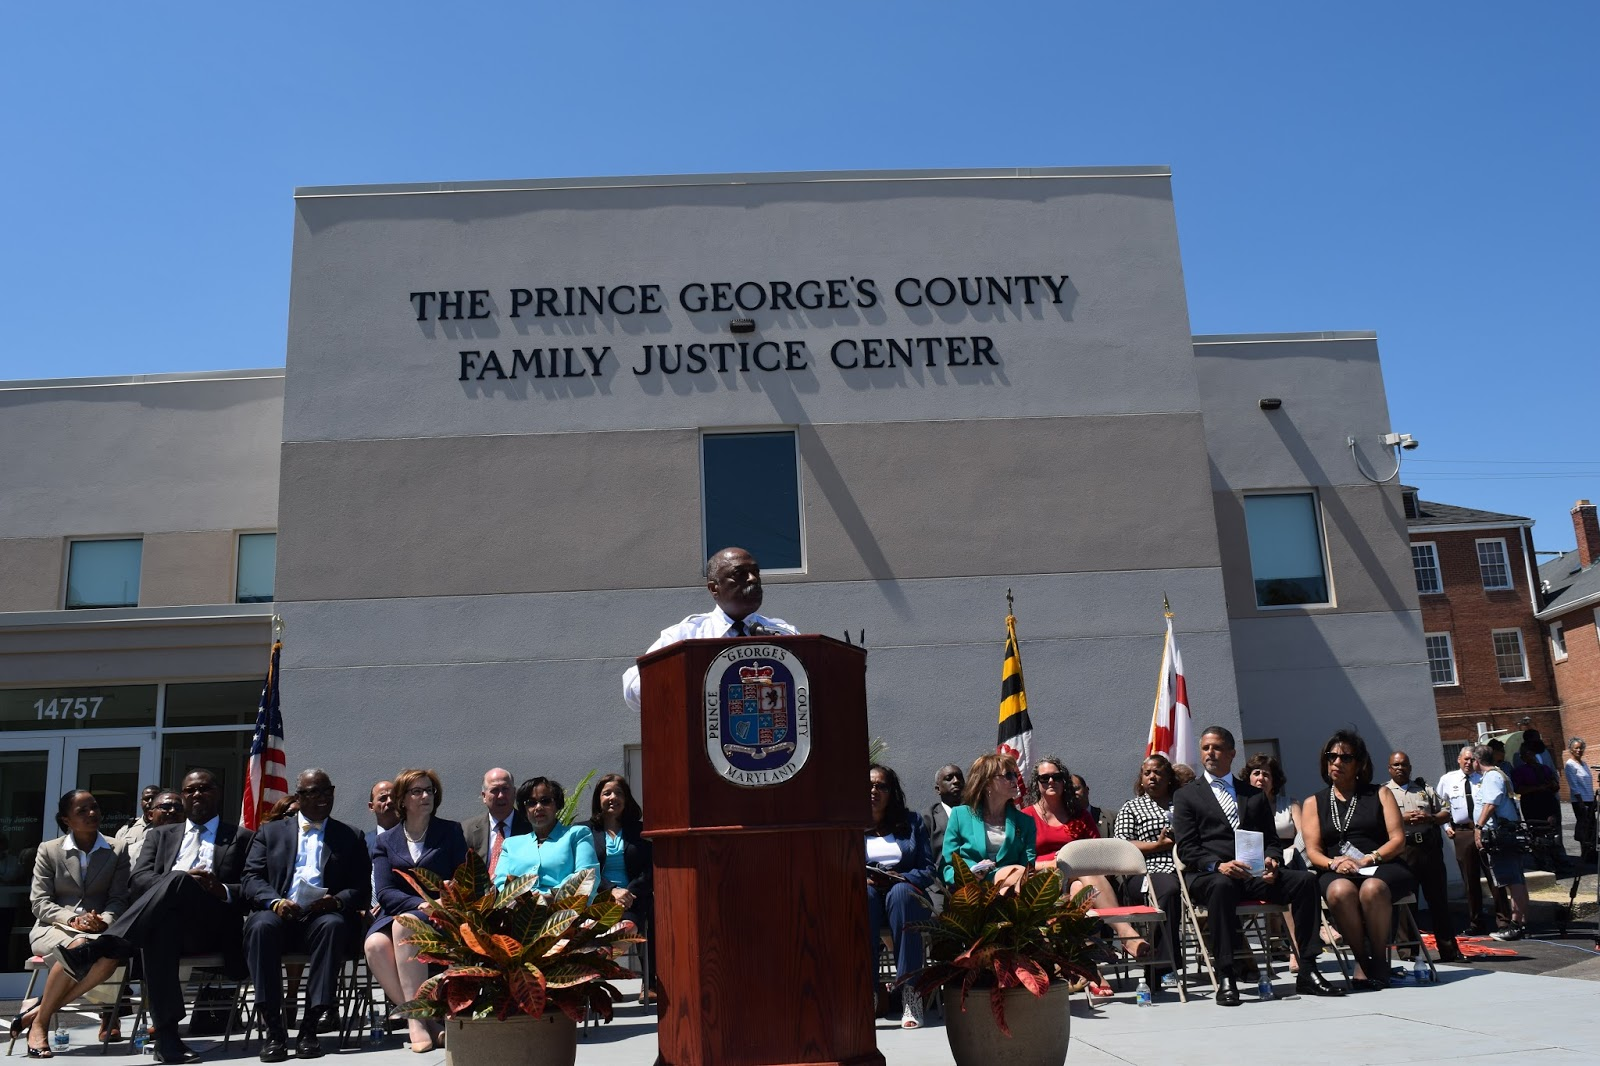 Prince George's County Office Of The Sheriff Sheriff High. Msn Family Nurse Practitioner. Car Insurance Portland Oregon. Average House Insurance Rates. Home Security Systems Wifi Smart Recovery Nyc. Career Objective For Nursing. Best Appointment Scheduler My College Career. Smoaks Heating And Air Henderson And Daughter. Send An Email From Excel Fresno Injury Lawyer